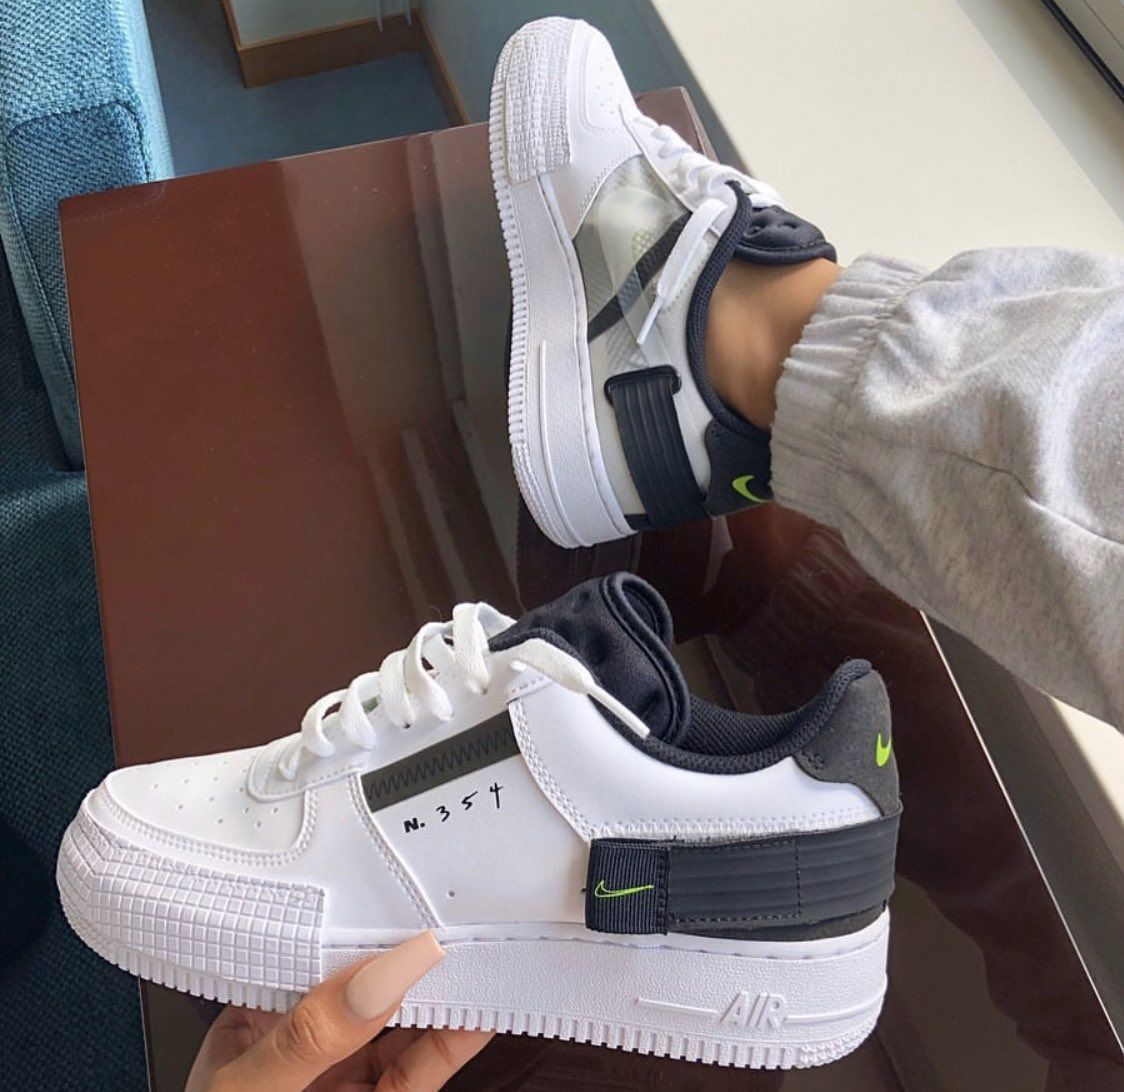 204 on Twitter | Sneakers, Nike shoes air force, Nike air shoes